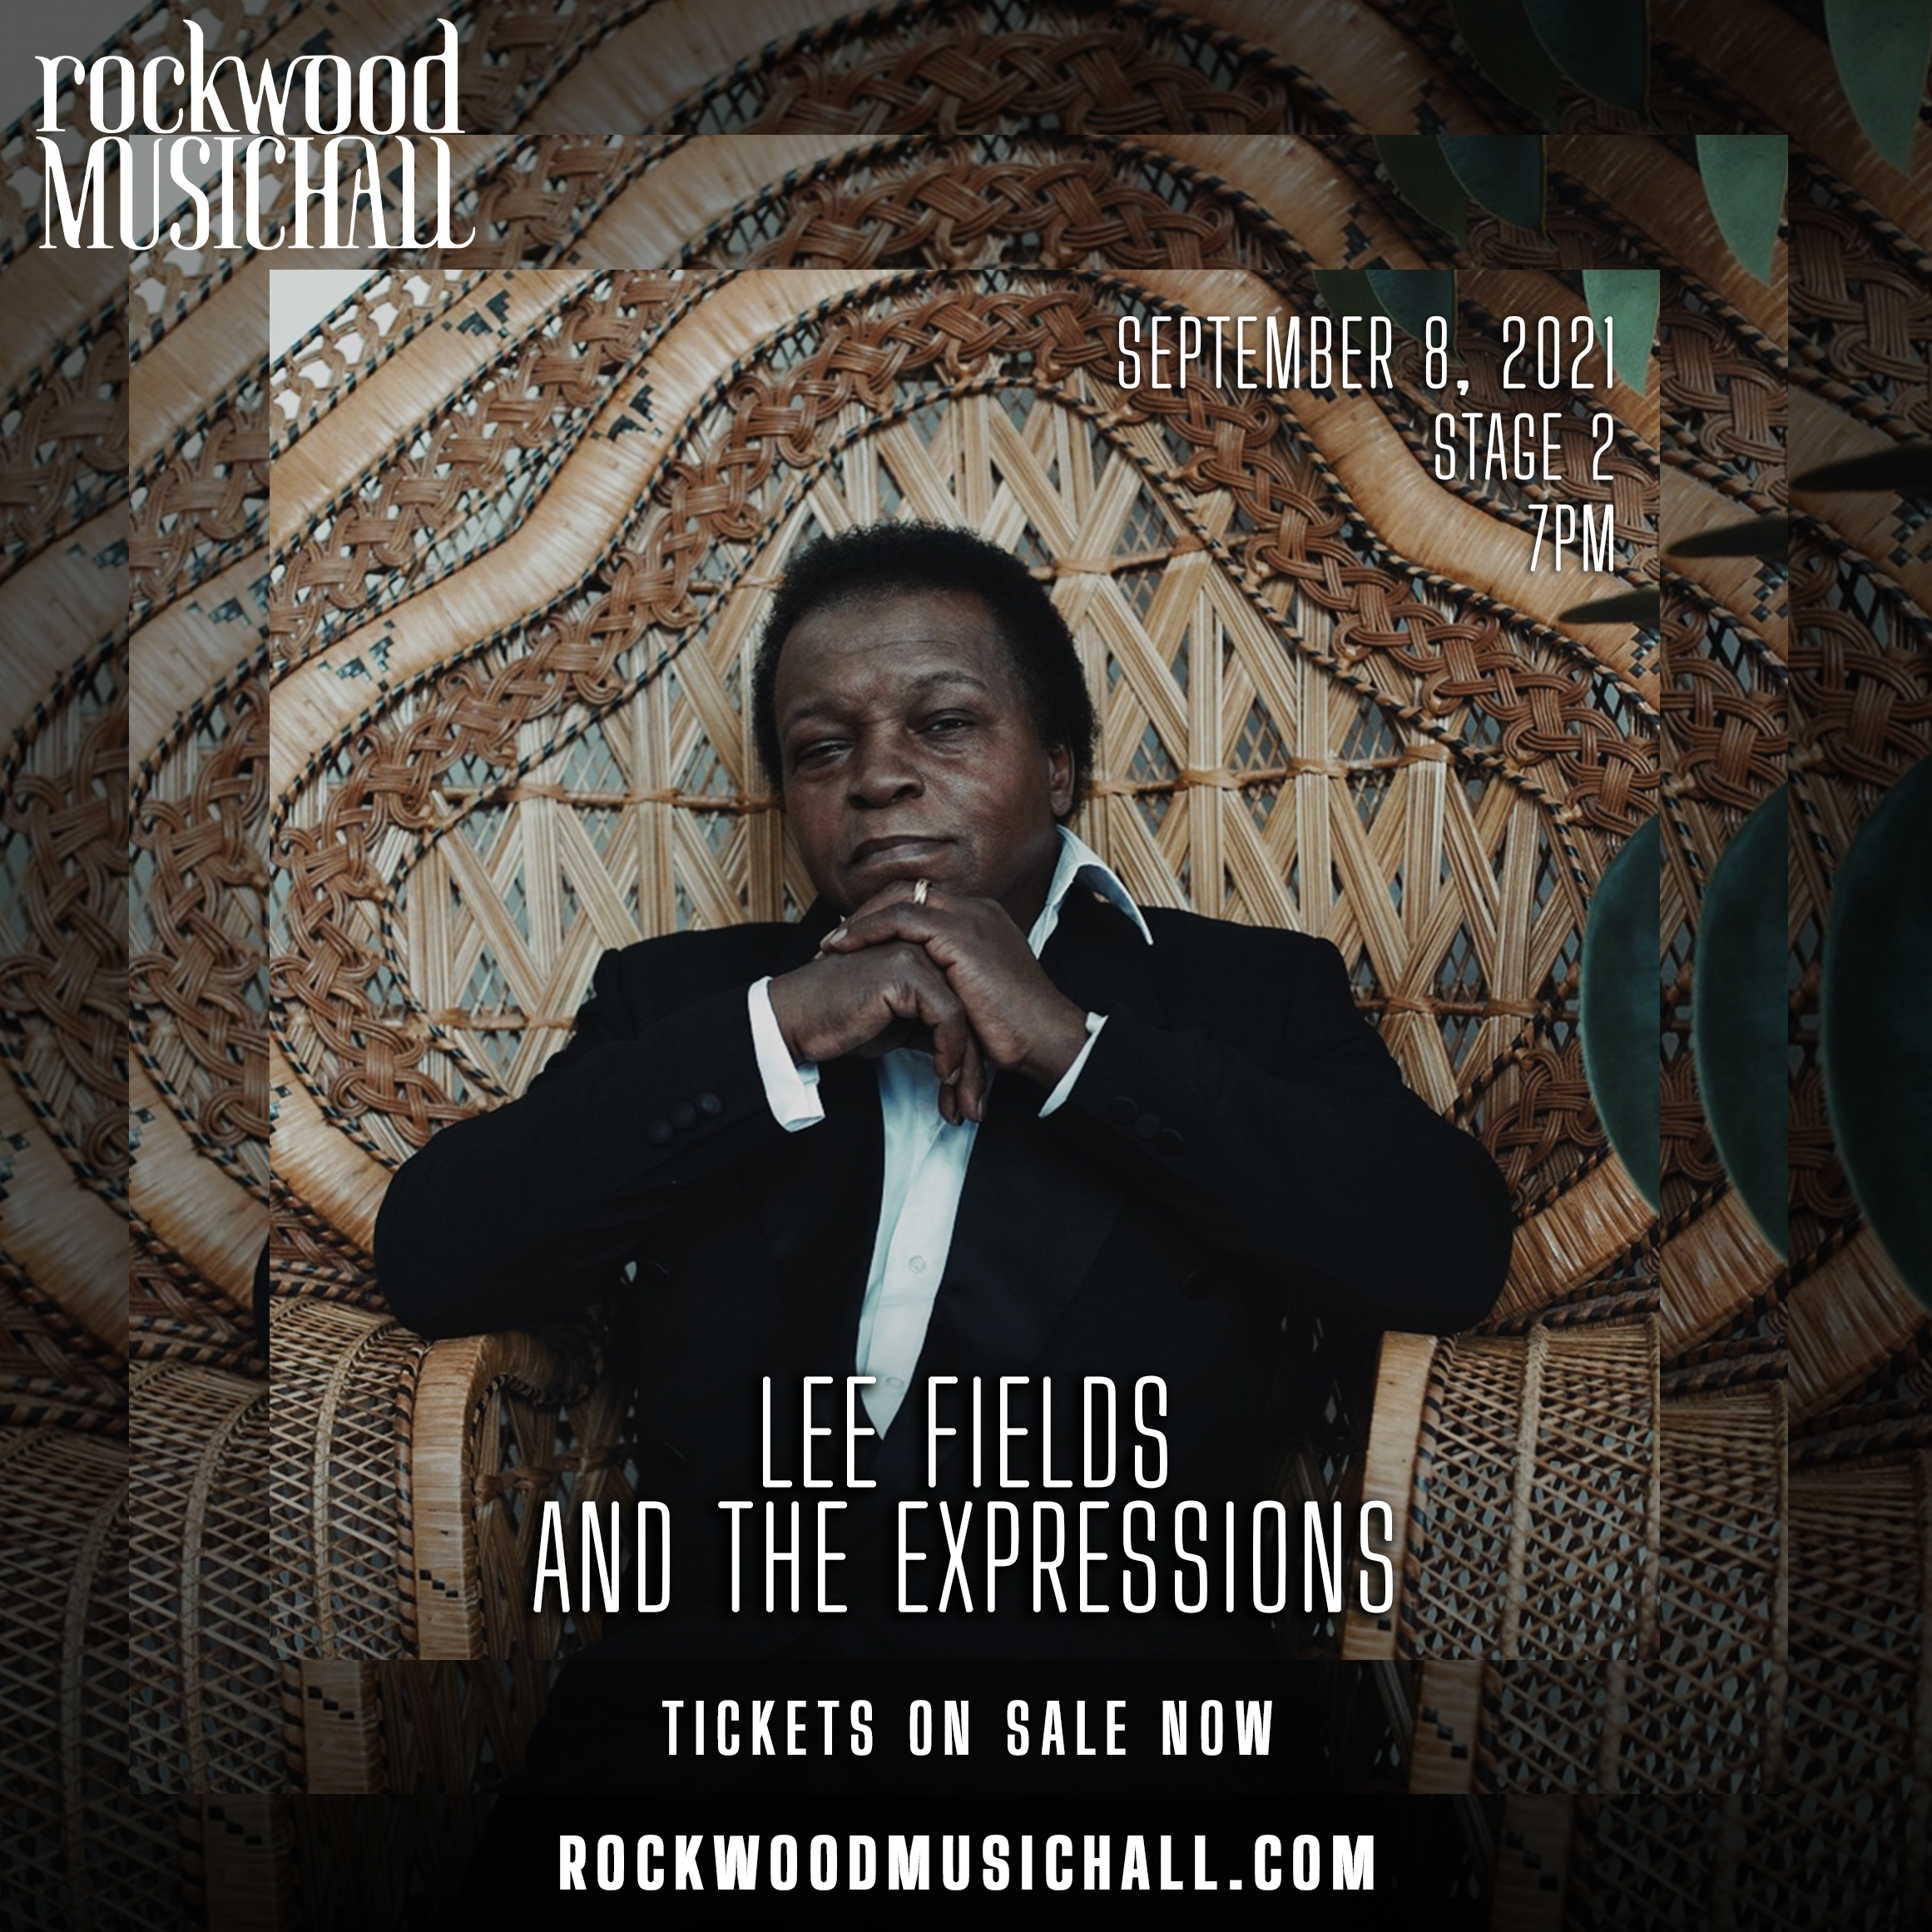 Lee Fields and The Expressions: